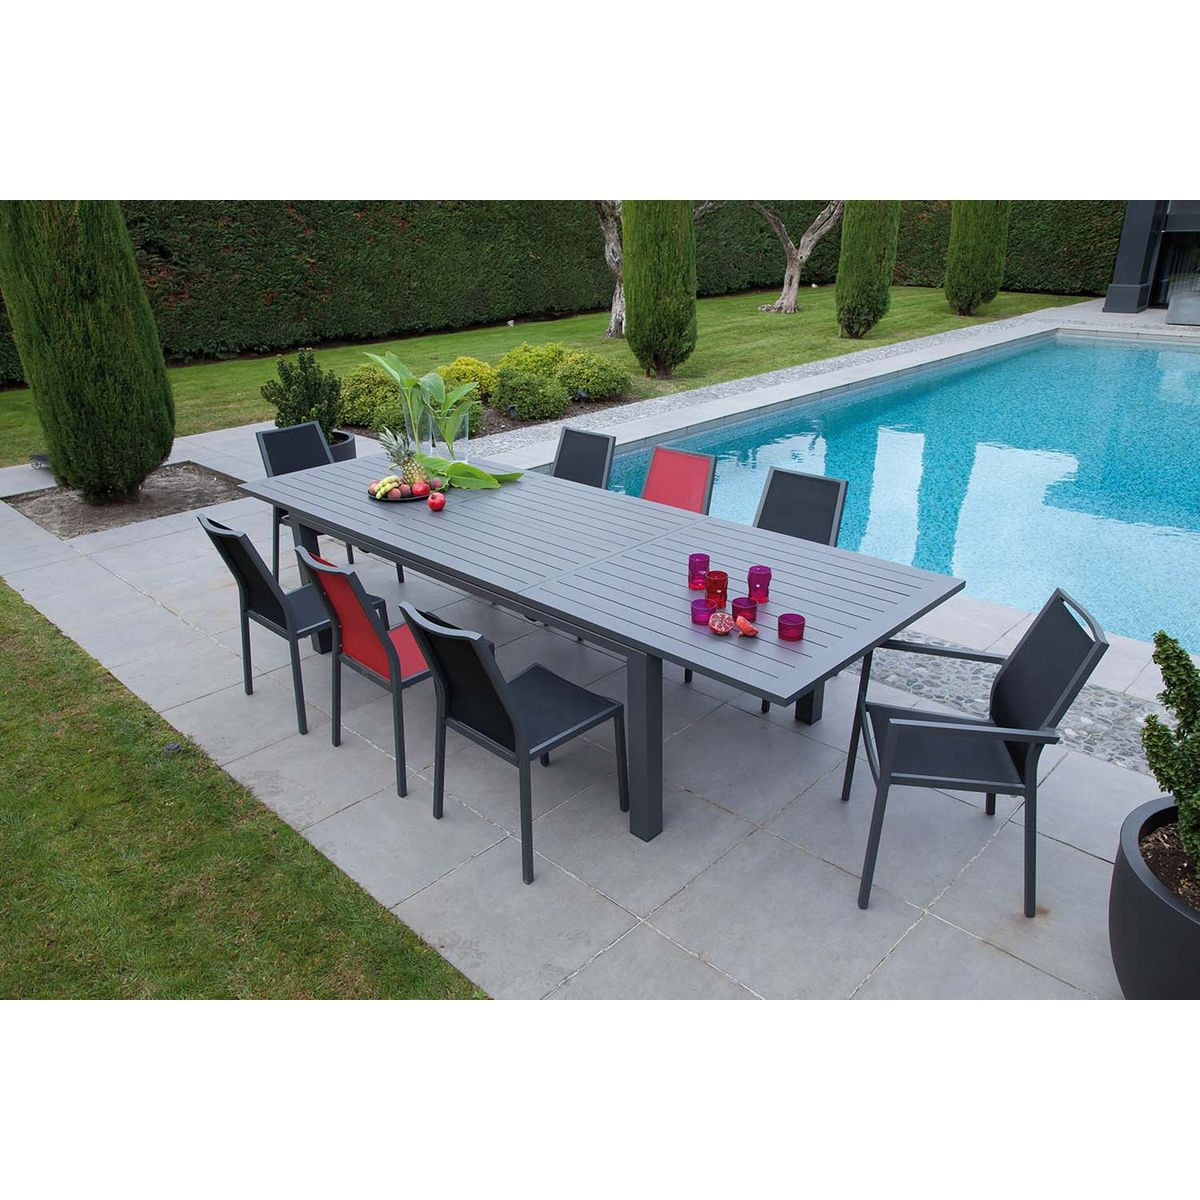 Fauteuils en aluminium brossé Ida (Lot de 2) | Products ...